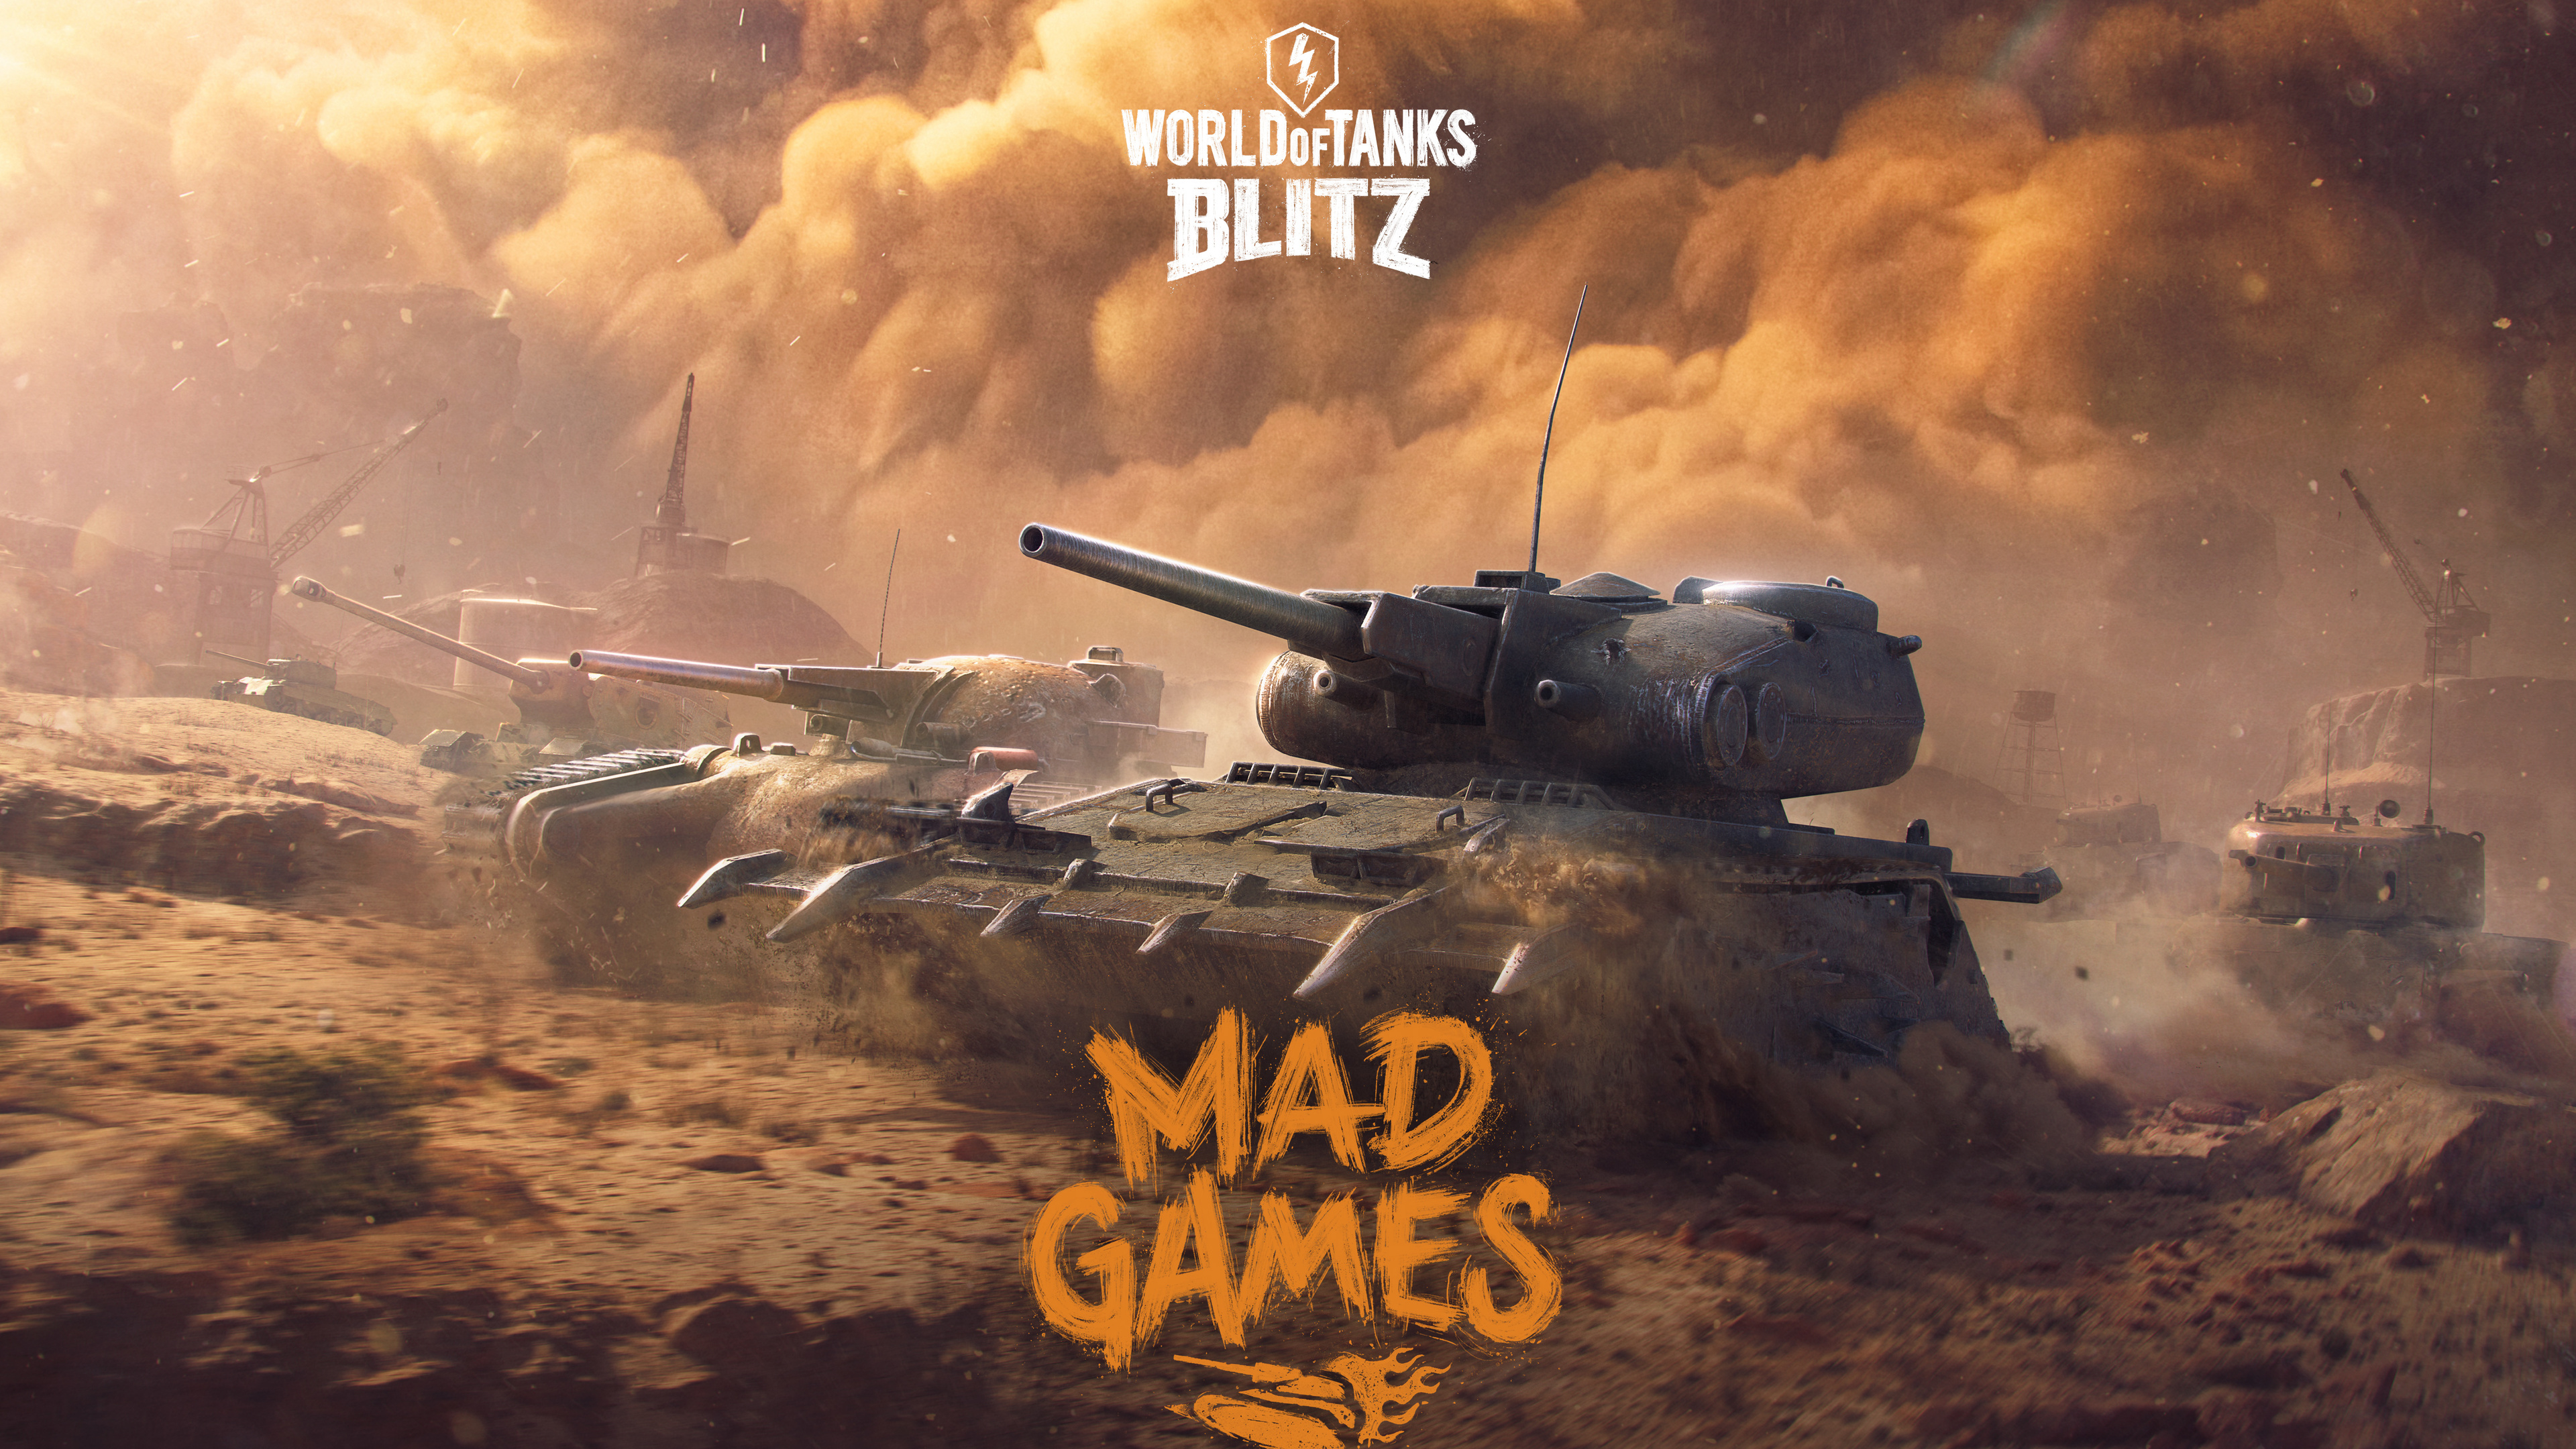 world of tanks blitz mad games 2018 4k 1543621182 - World Of Tanks Blitz Mad Games 2018 4k - xbox games wallpapers, world of tanks wallpapers, ps4 games wallpapers, pc games wallpapers, hd-wallpapers, games wallpapers, 4k-wallpapers